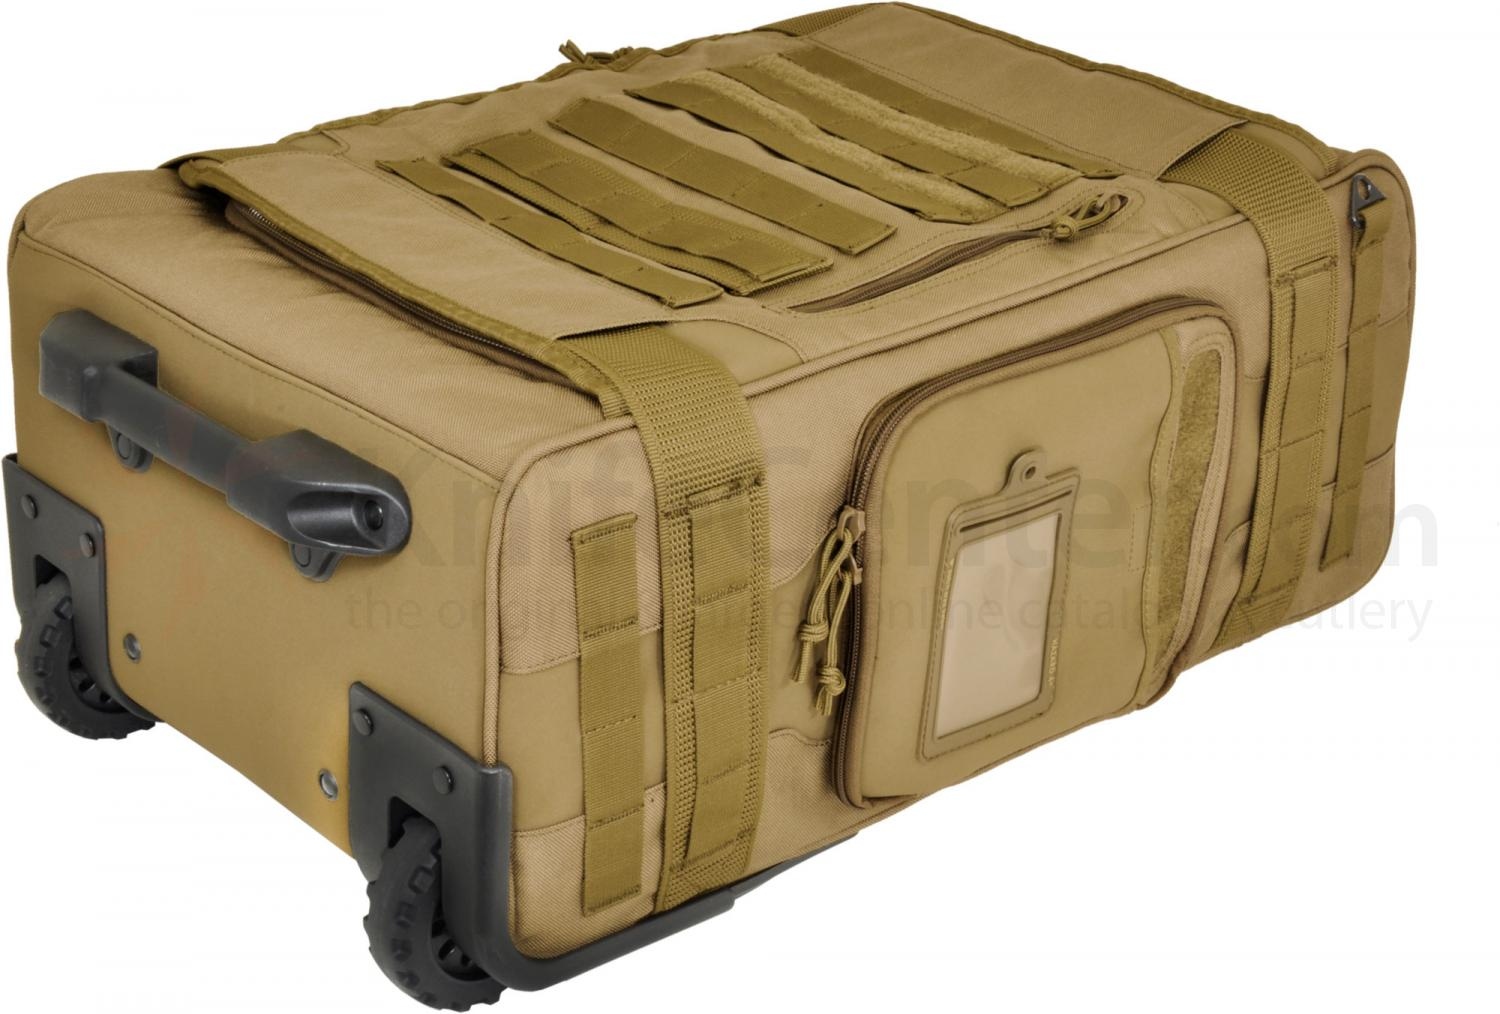 Hazard 4 Air Support Rugged Rolling Carry-On Luggage, Coyote